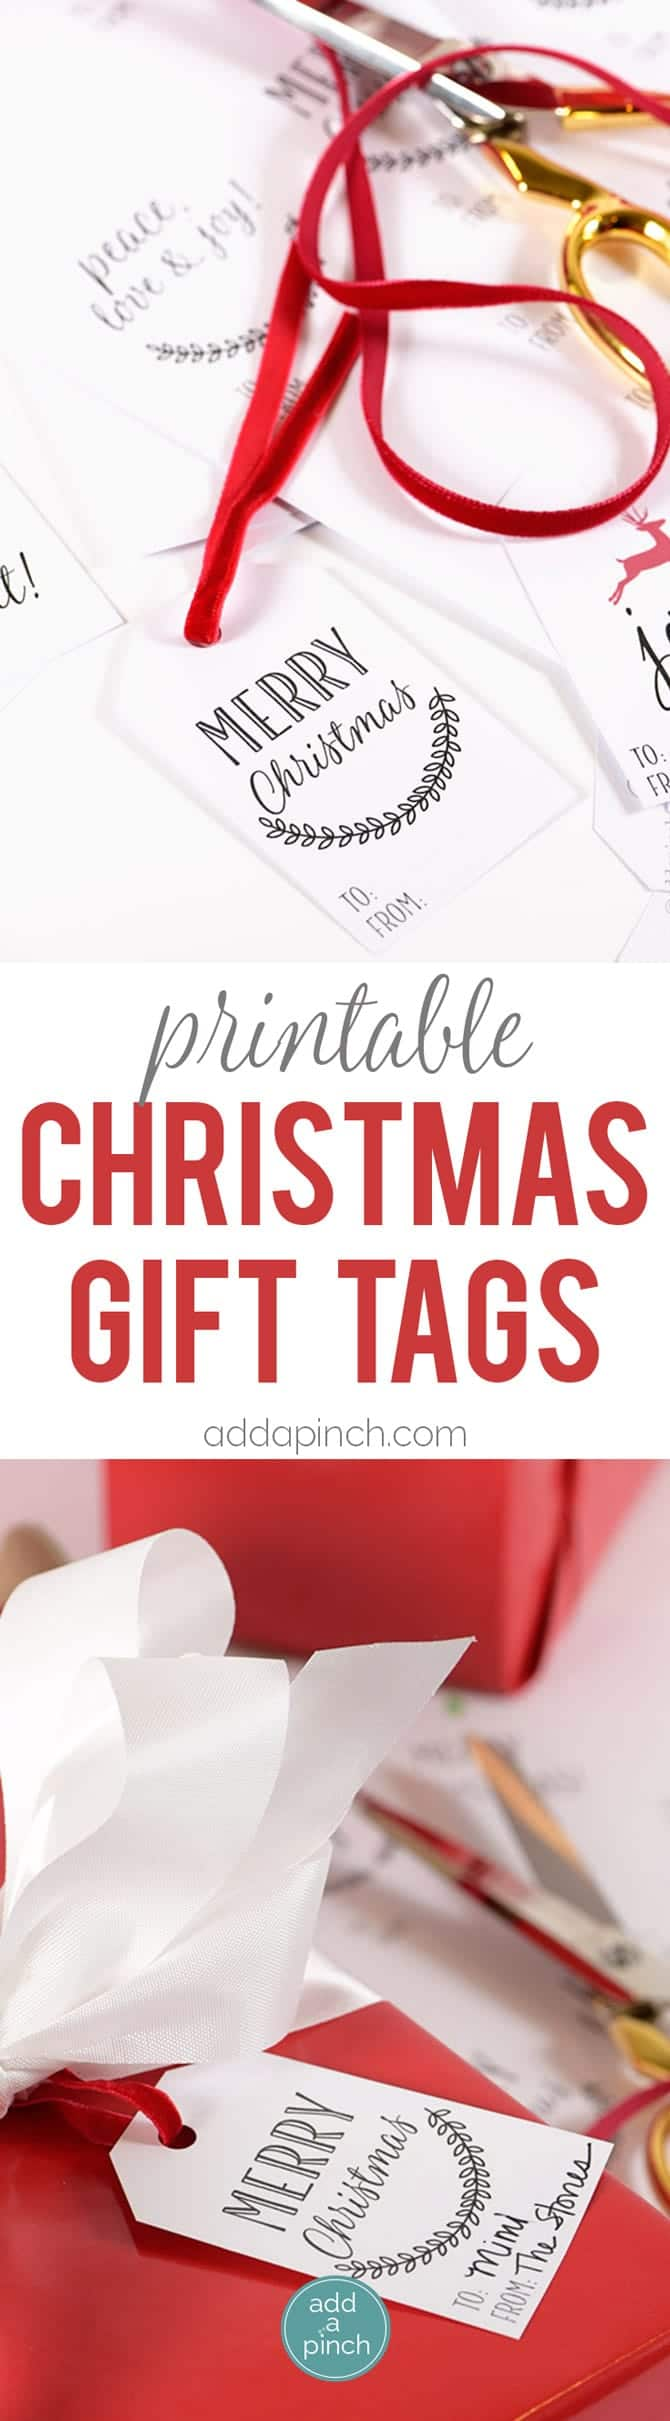 Christmas gift tags just dress up a Christmas gift and make it even more special! These free printable Christmas gift tags are designed for quick and easy printing to make your holiday gift giving even easier! // addapinch.com